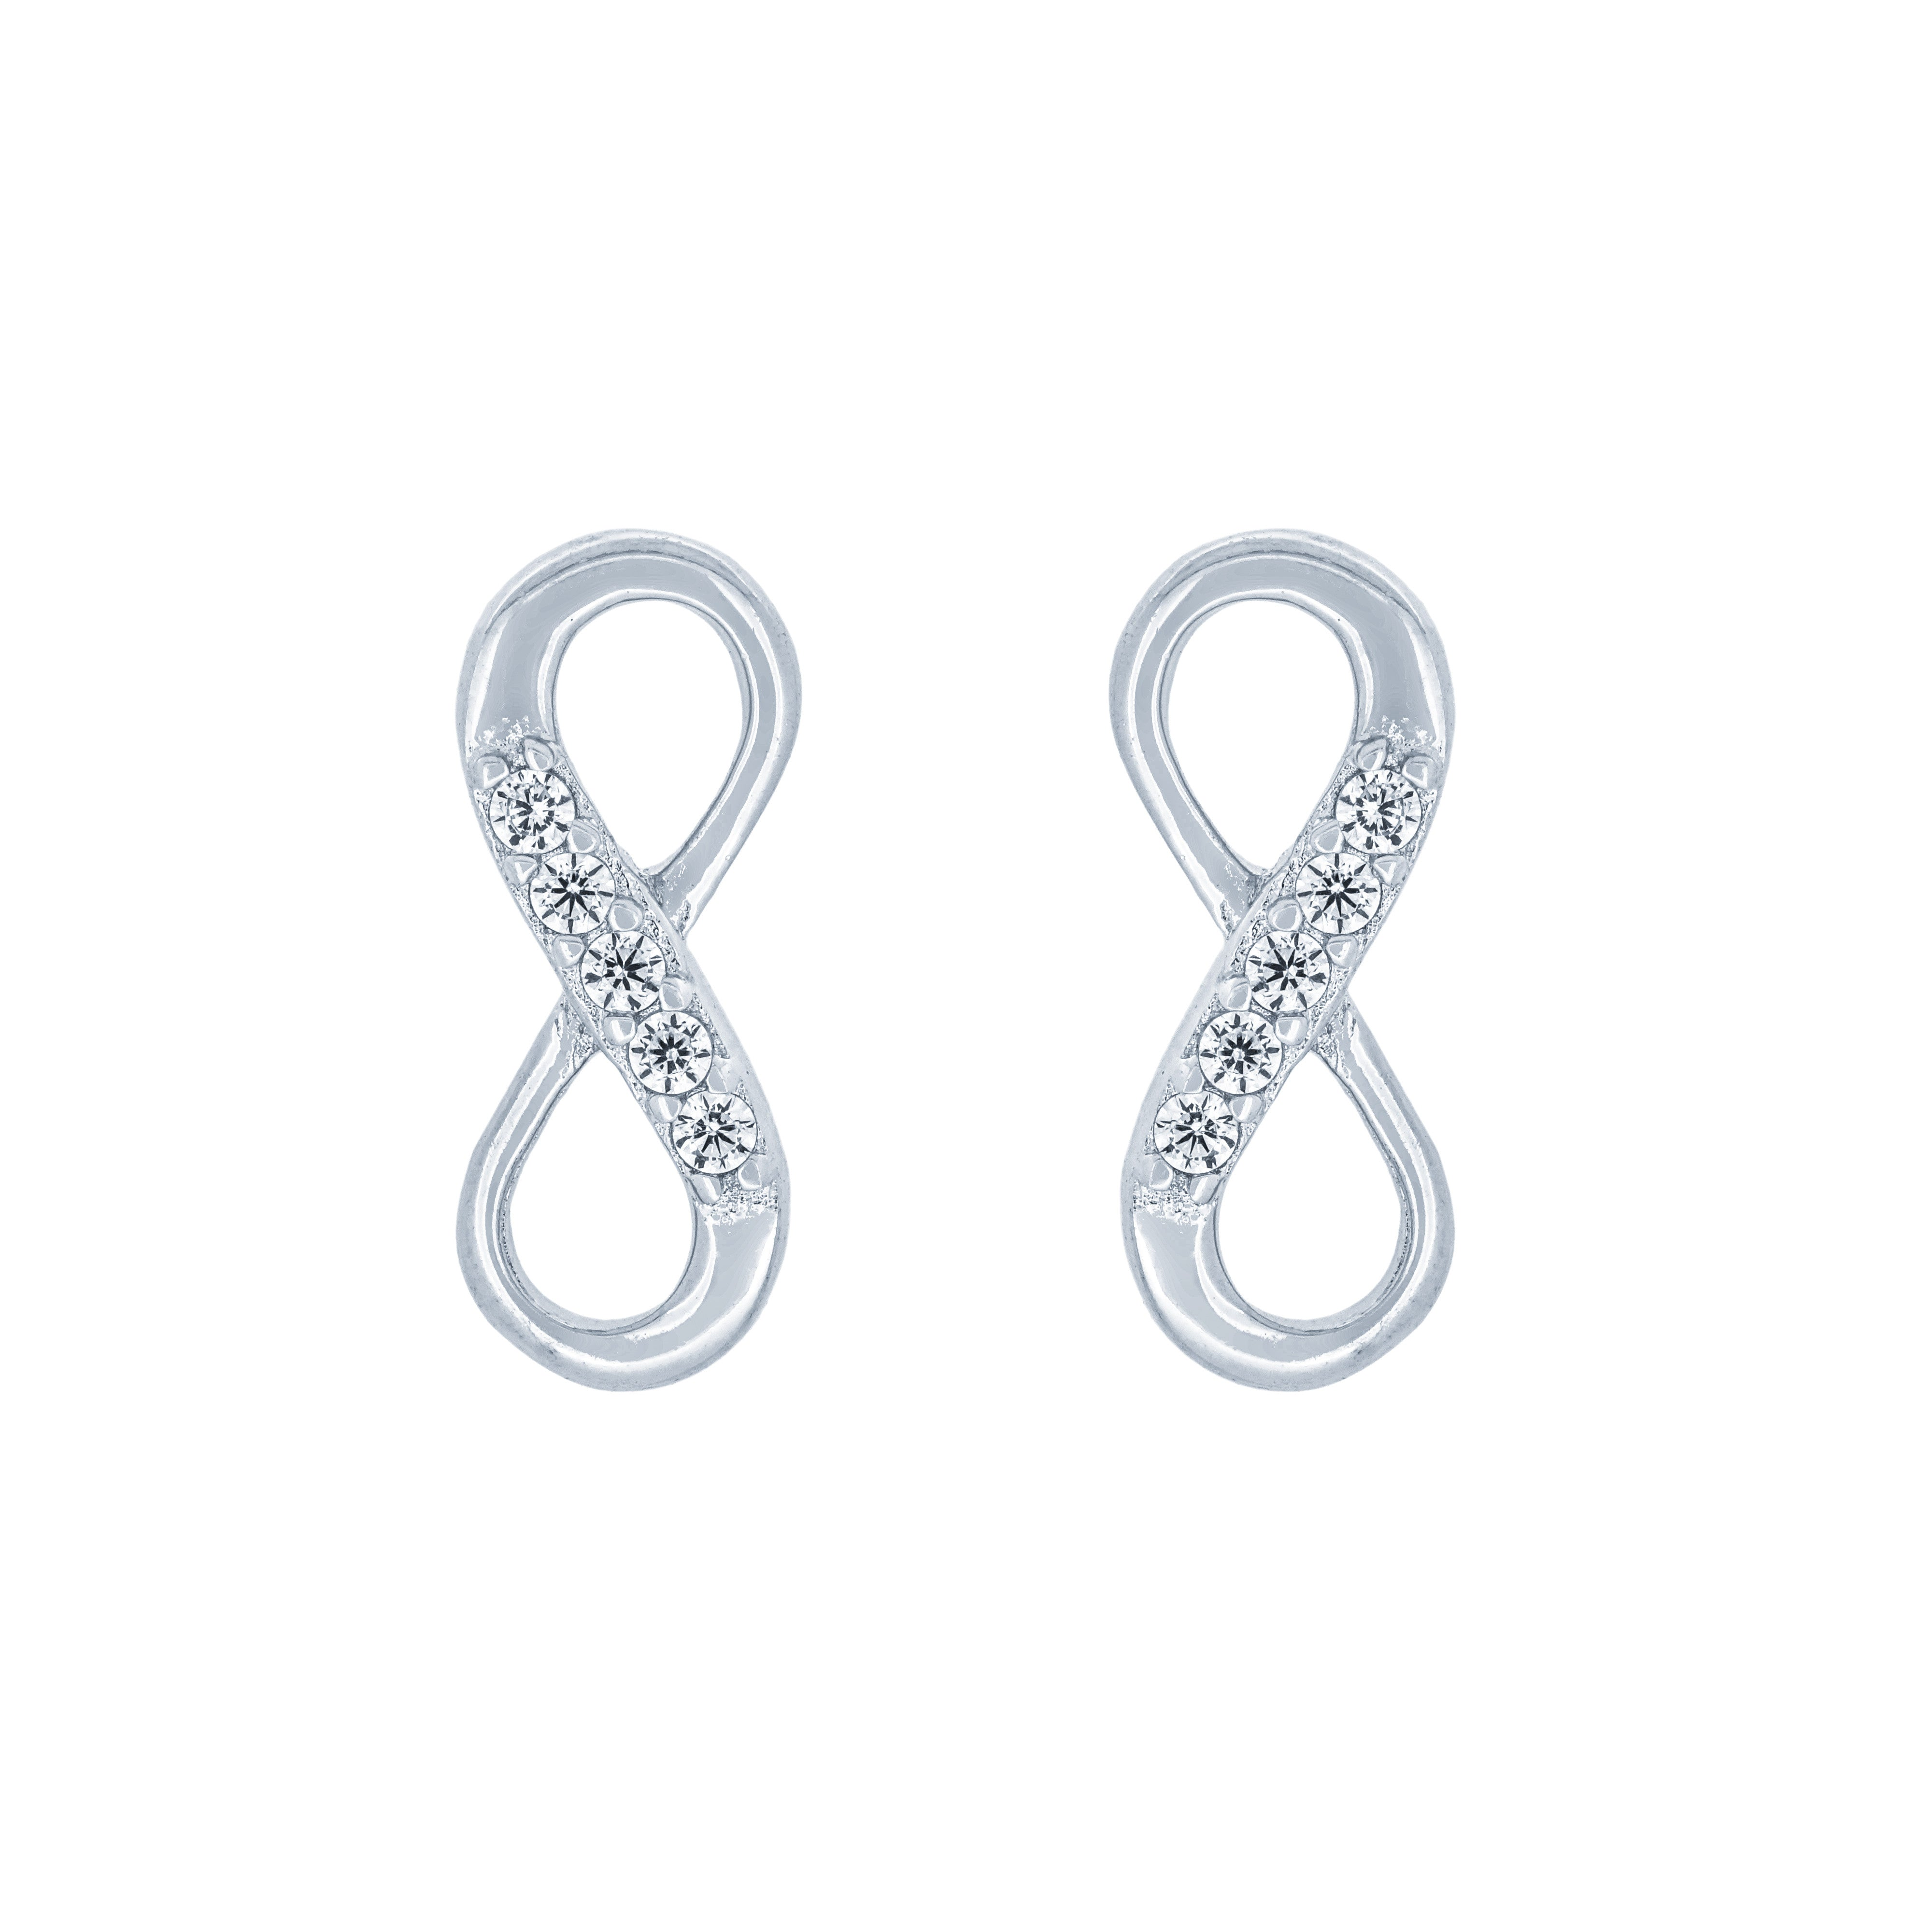 (100054) White Cubic Zirconia Infinity Stud Earrings In Sterling Silver